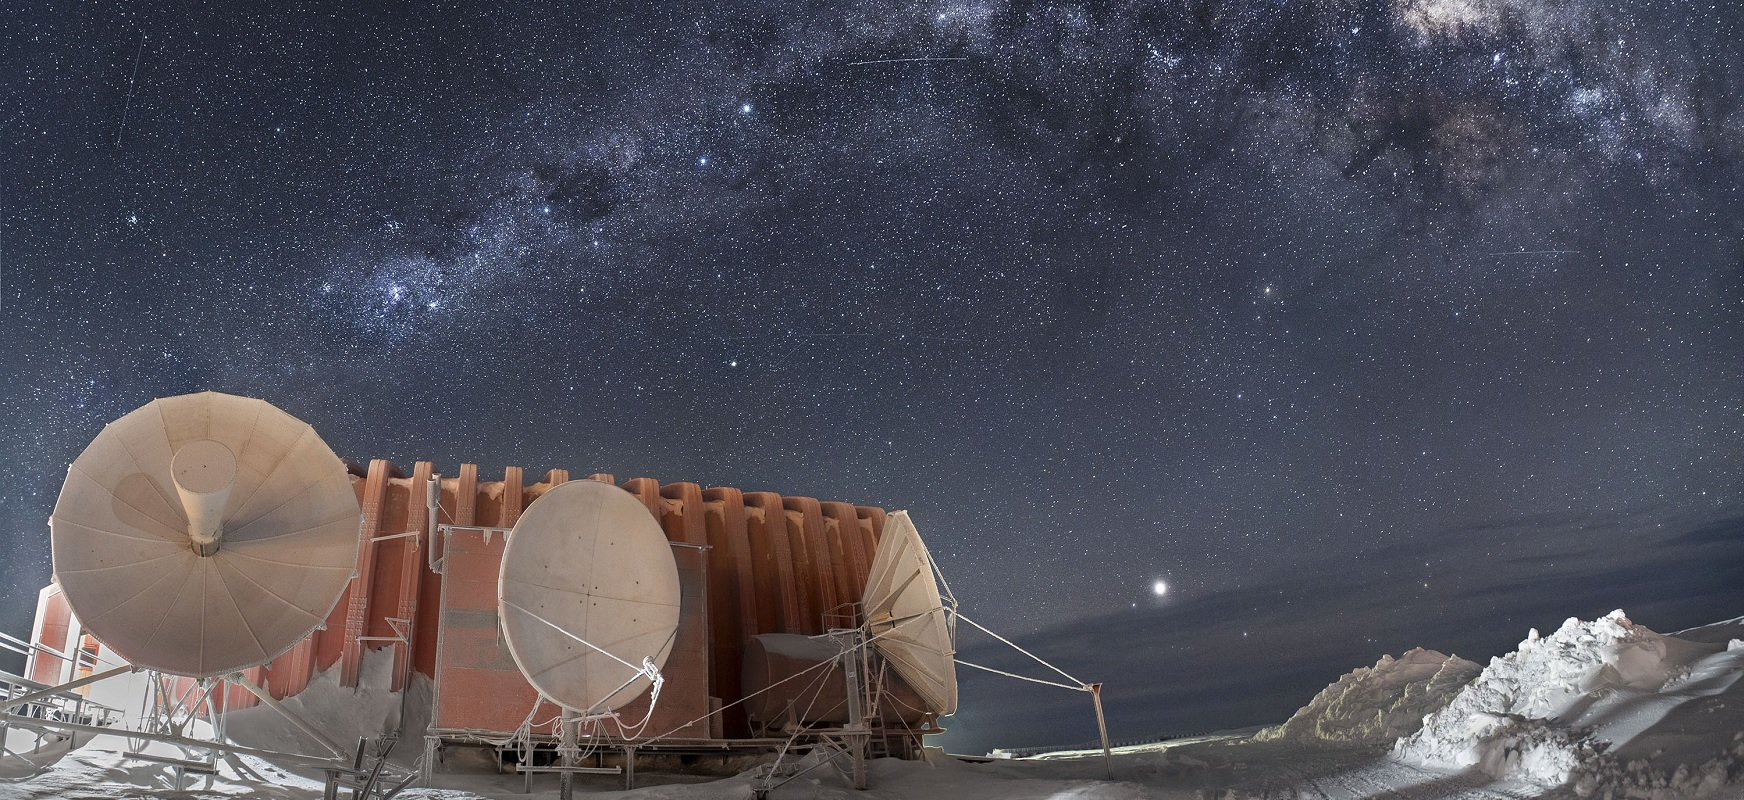 If we built a telescope on top of a tower in Antarctica, we would see things that astronomers never dreamed of